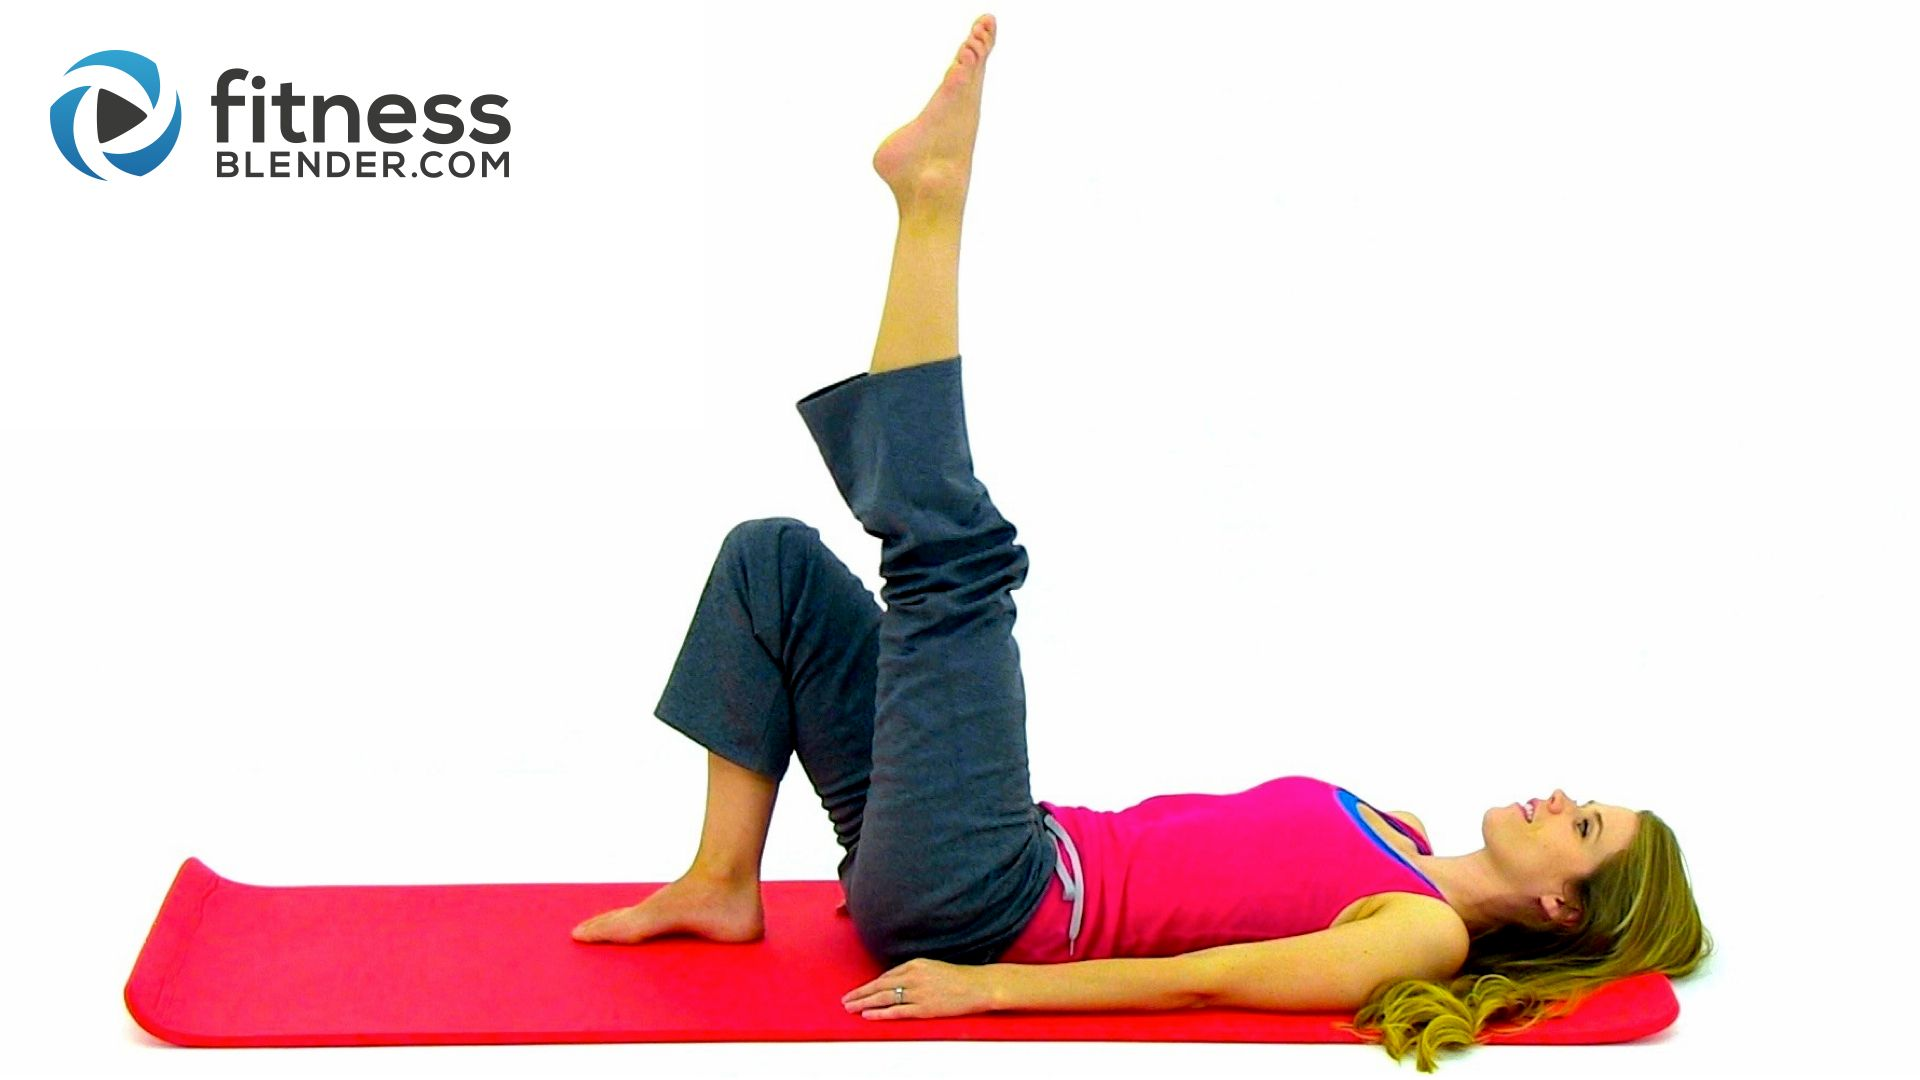 19 Minute Post Abdominal Surgery, Pregnancy, or C Section Workout video to keep you fit while you heal.